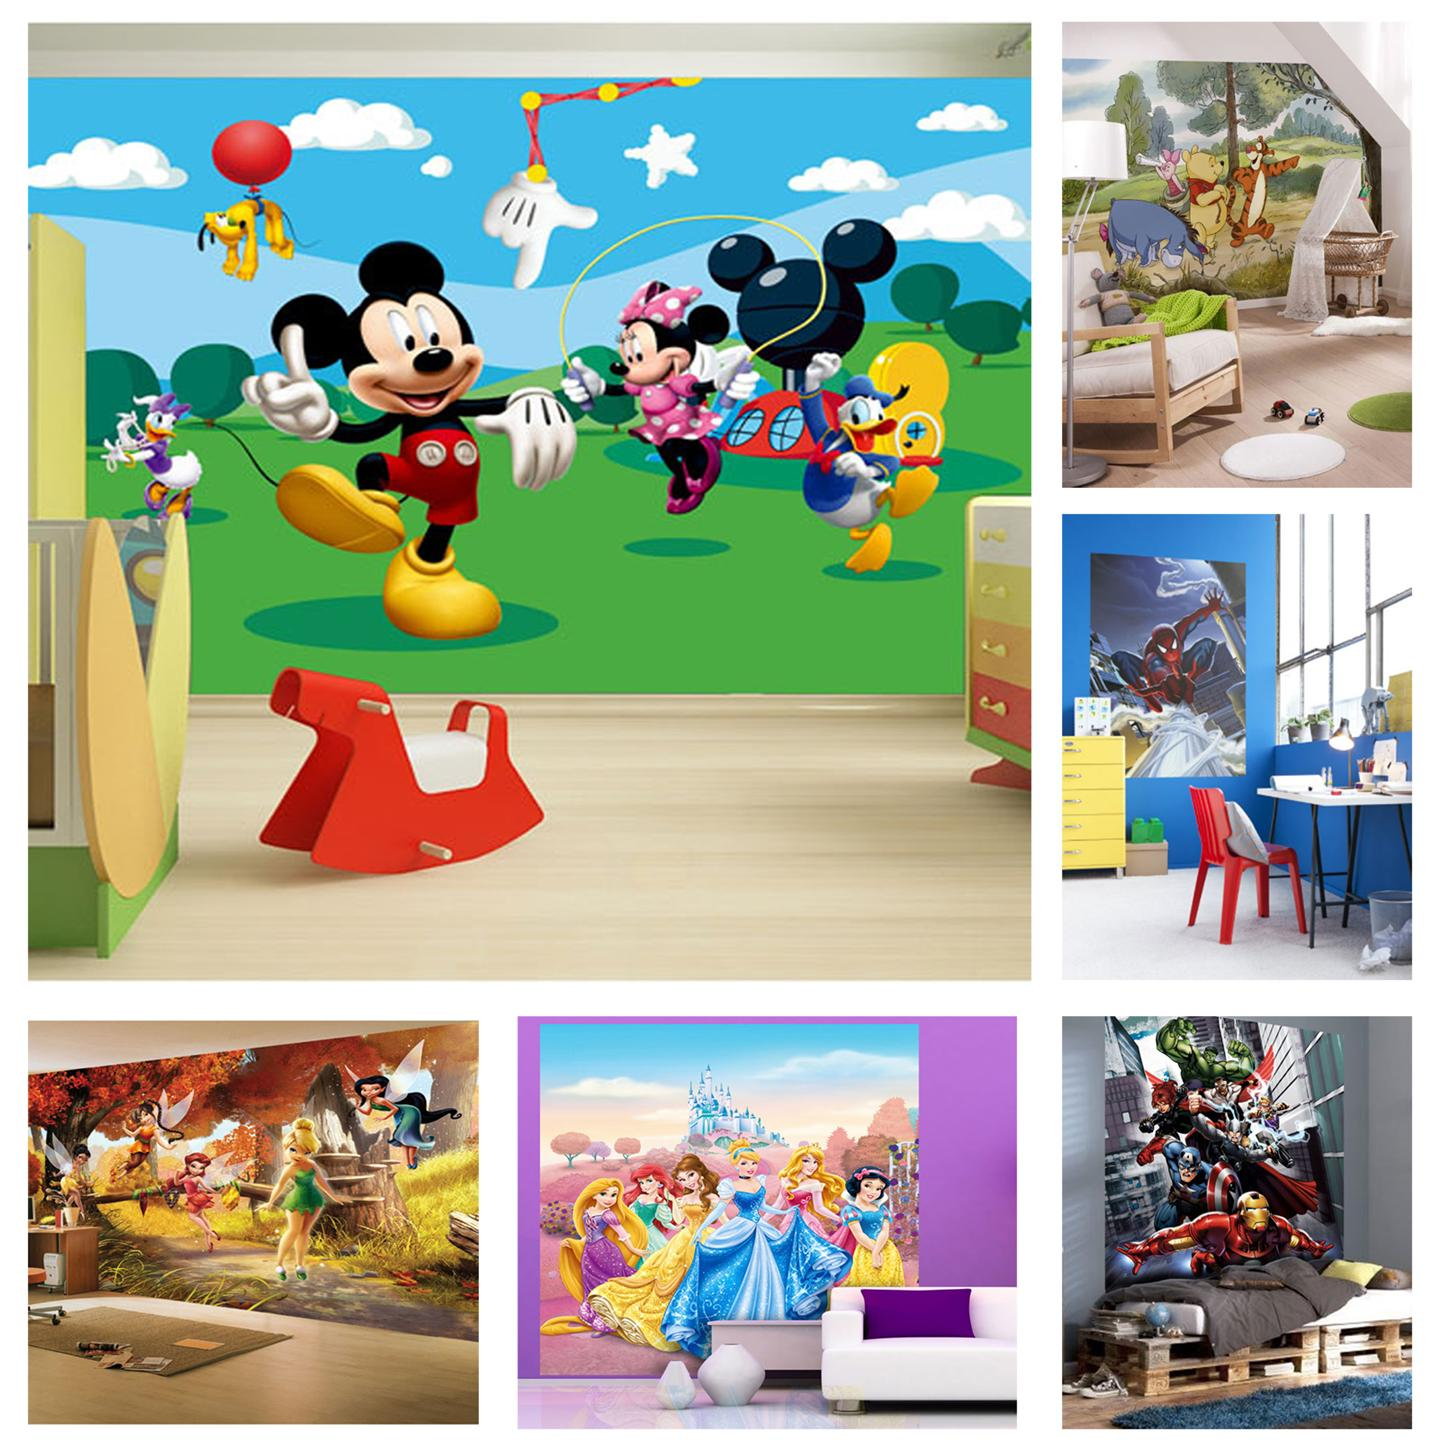 Childrens bedroom disney character wallpaper wall mural for Disney wall mural uk